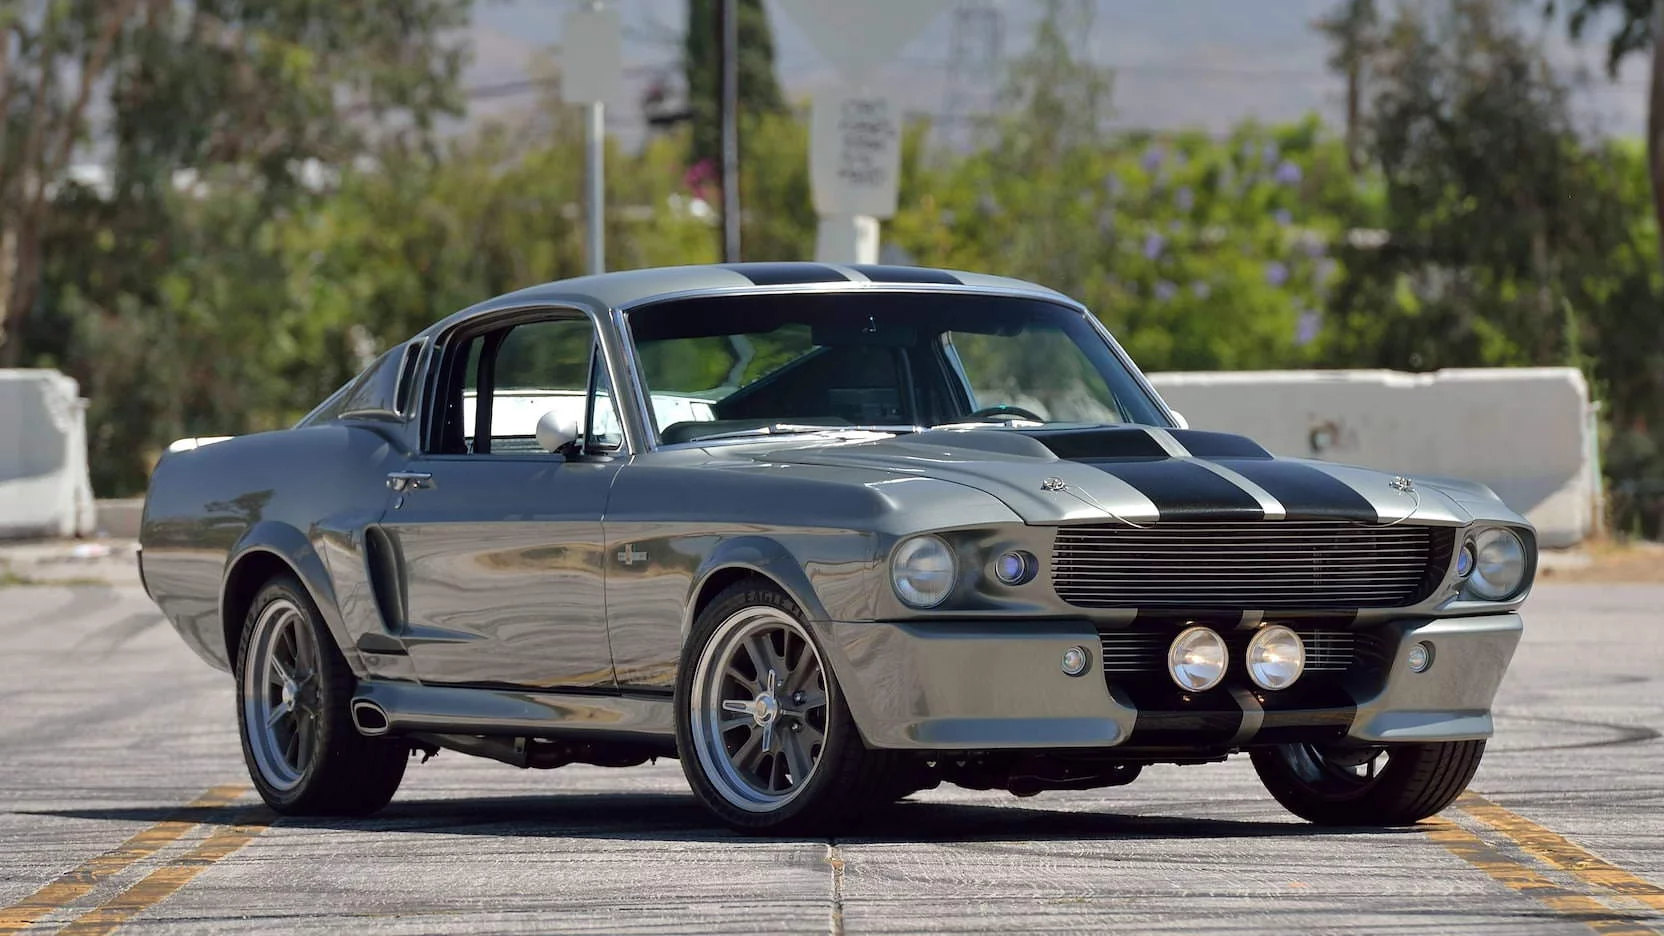 1967 Ford Mustang Shelby Gt500 Eleanor Namastecar